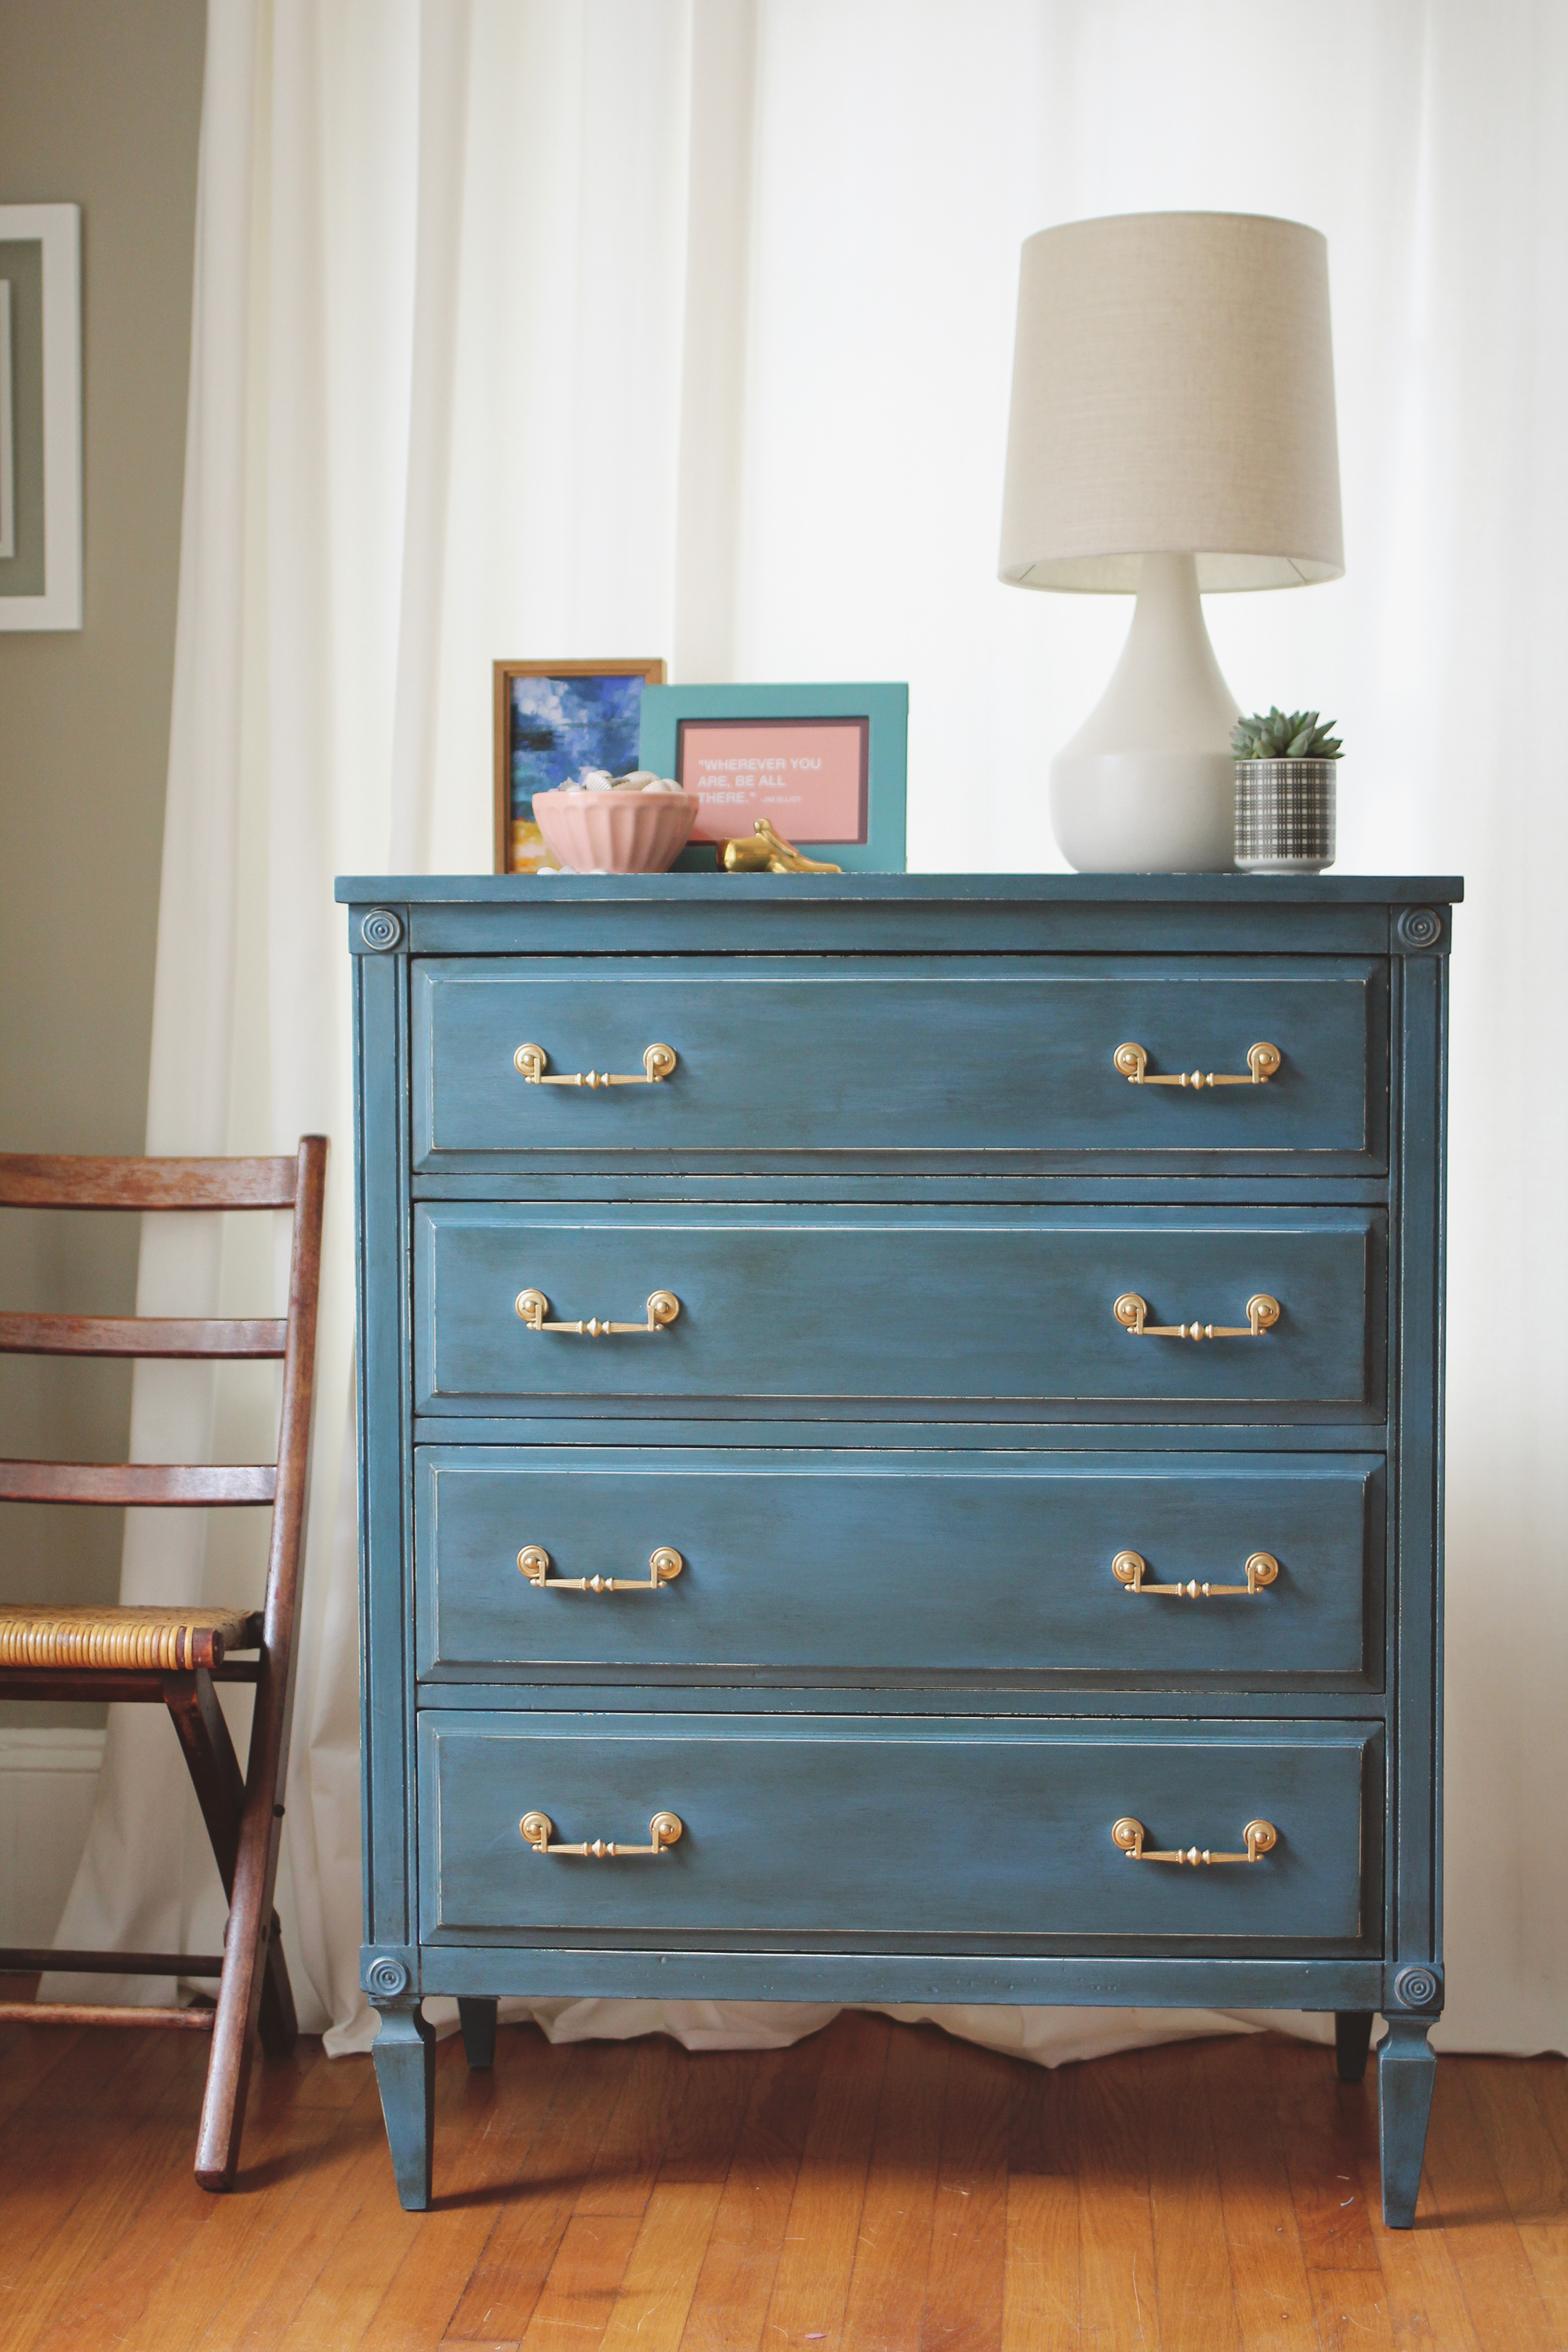 Annie Sloan Painted Dresser Cheaper Than Retail Price Buy Clothing Accessories And Lifestyle Products For Women Men